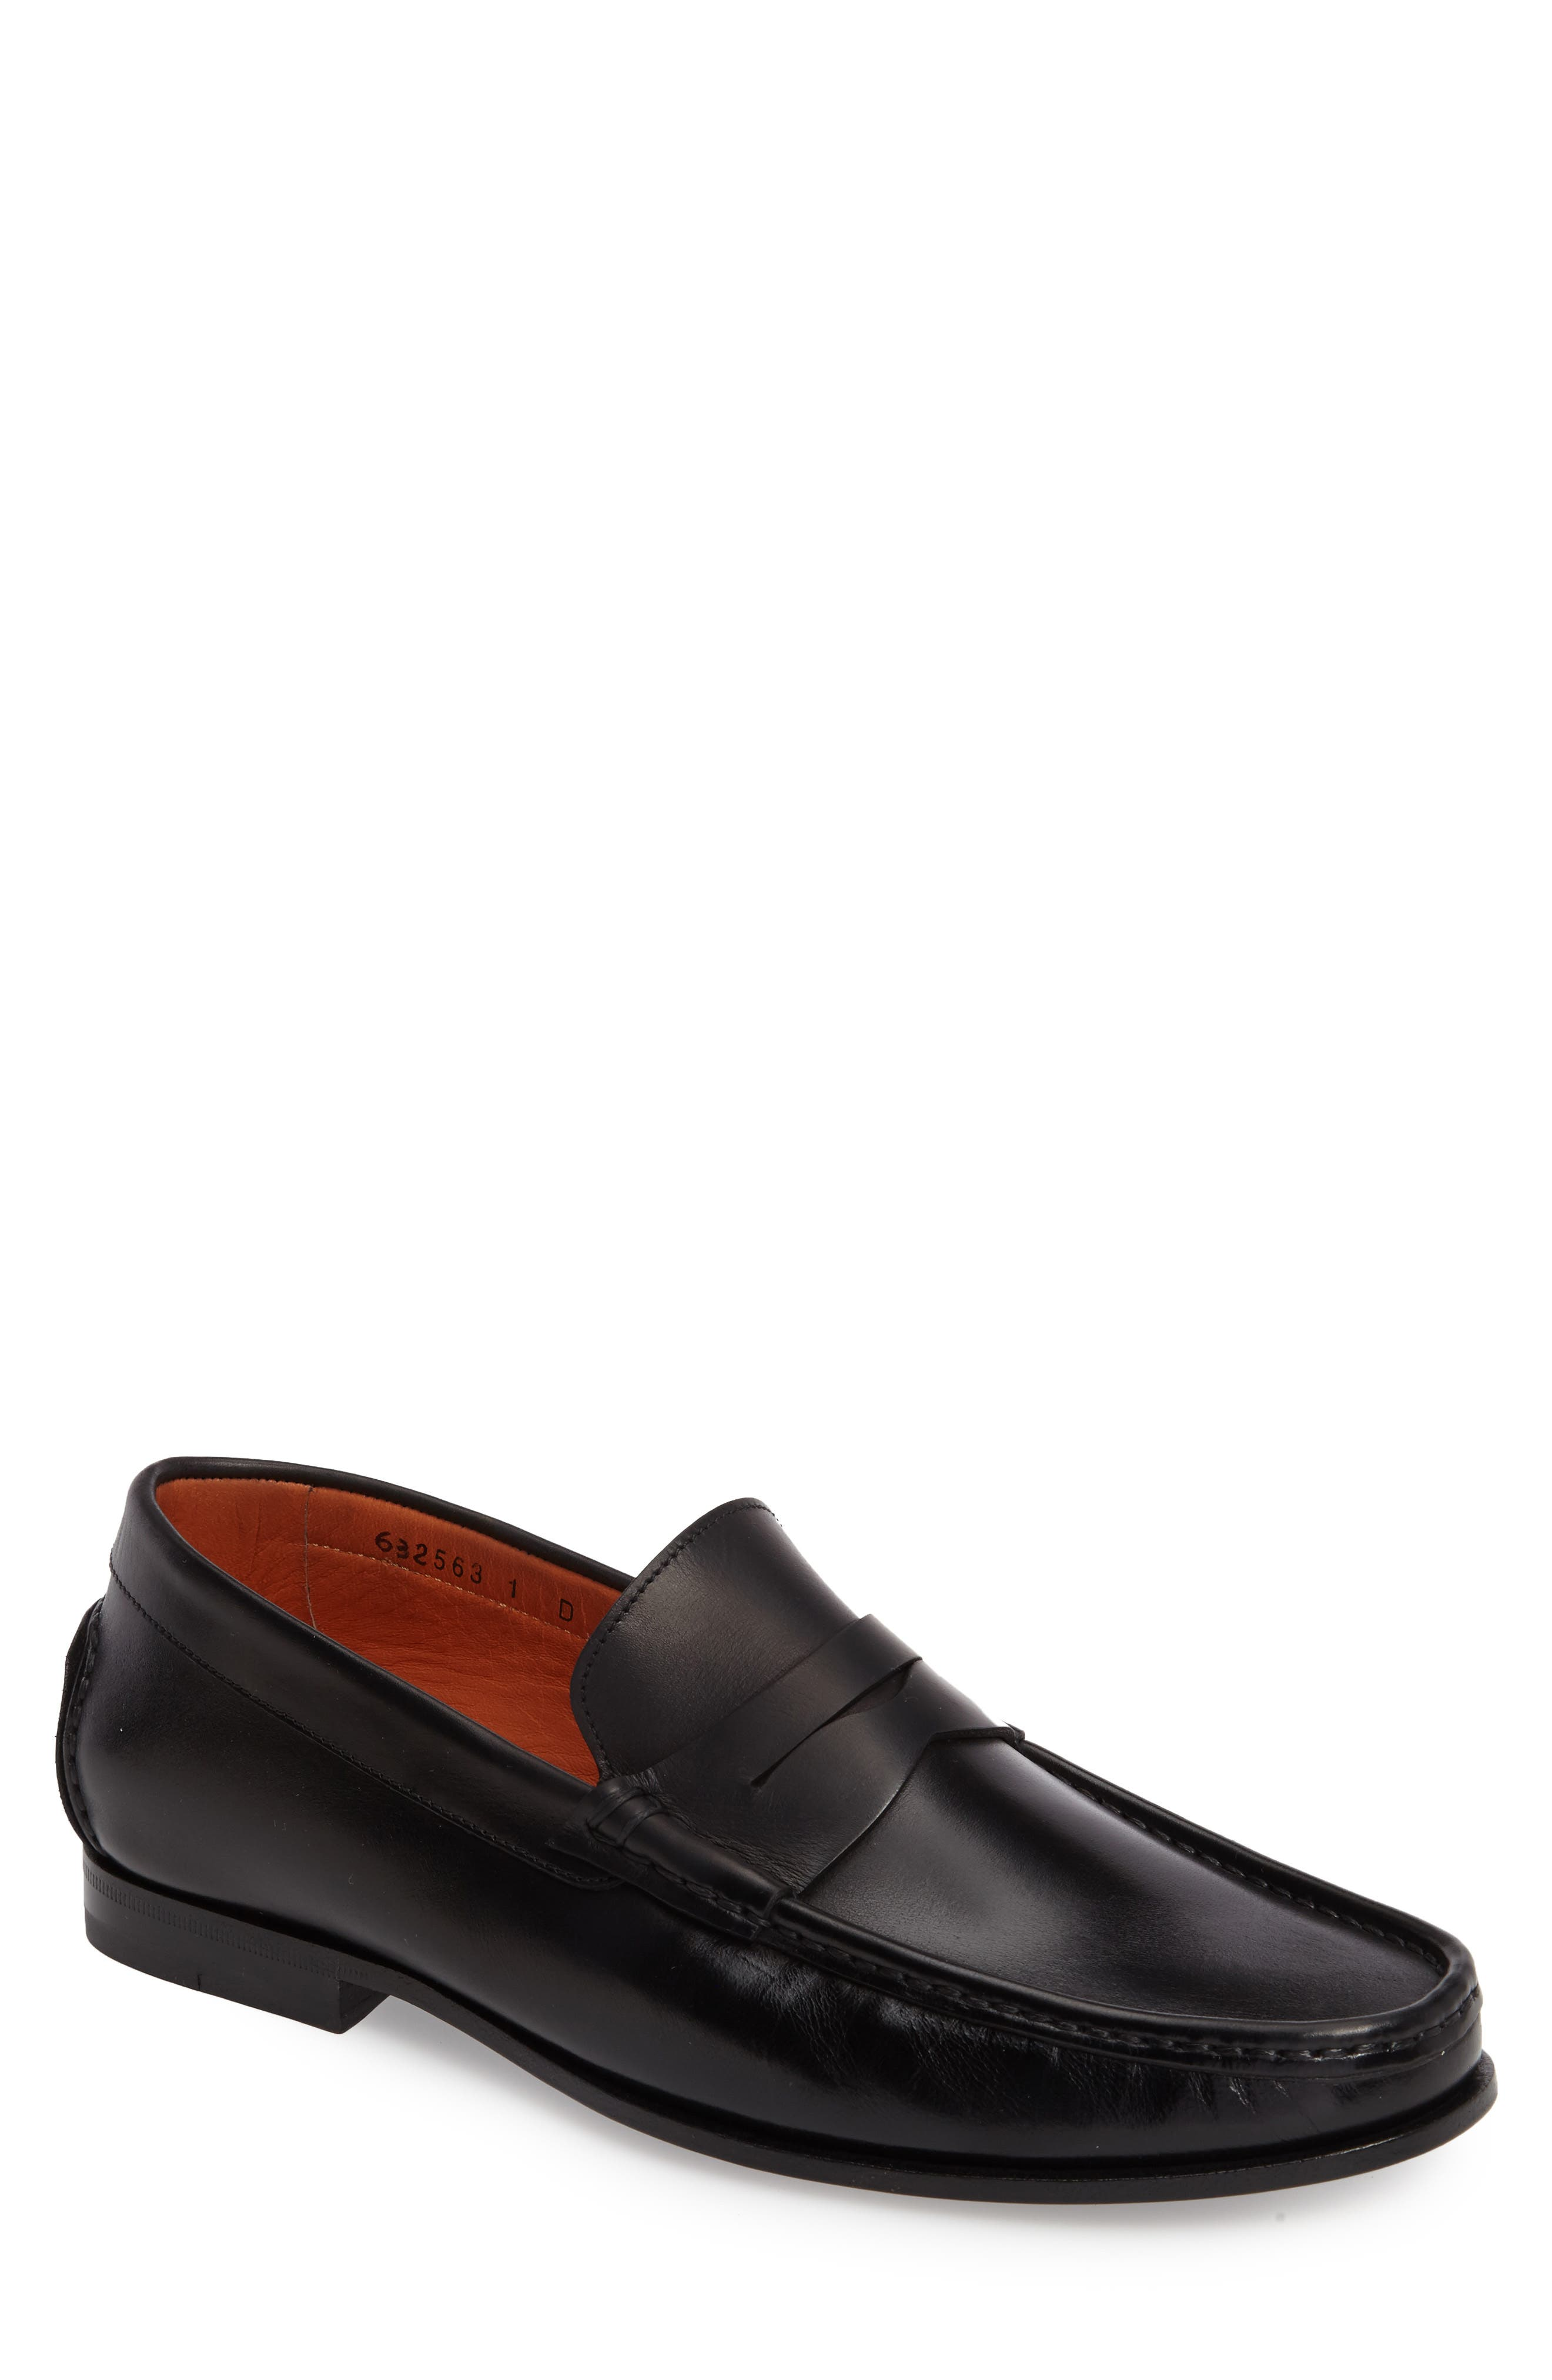 Fergus Penny Loafer,                             Main thumbnail 1, color,                             BLACK LEATHER